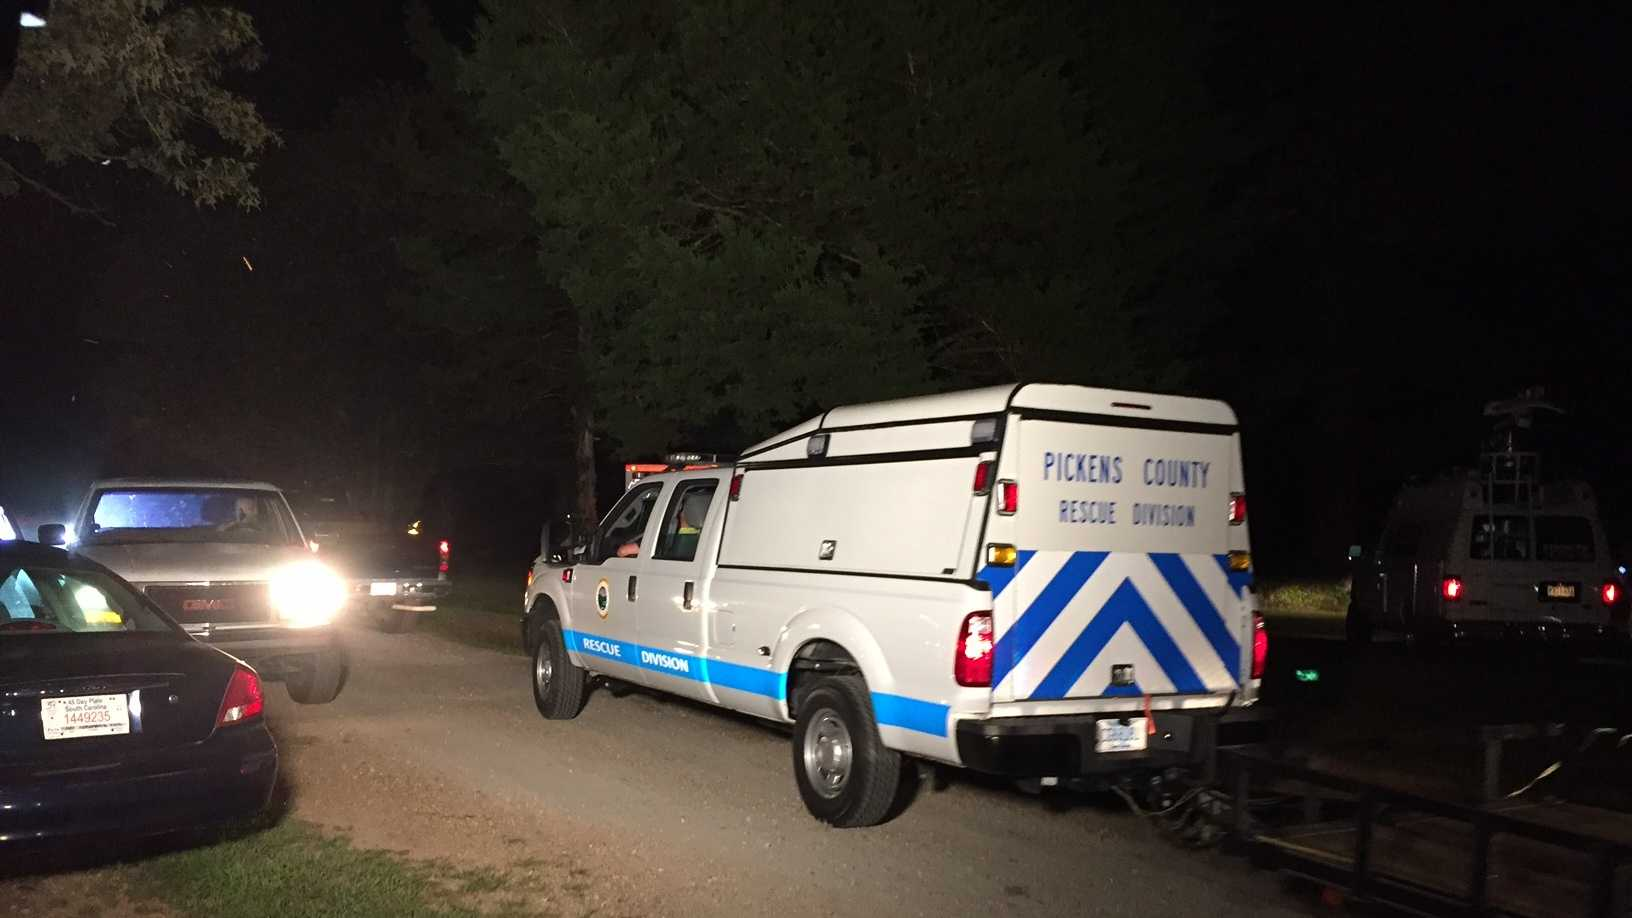 Body of 6-year-old boy recovered after six hour search.